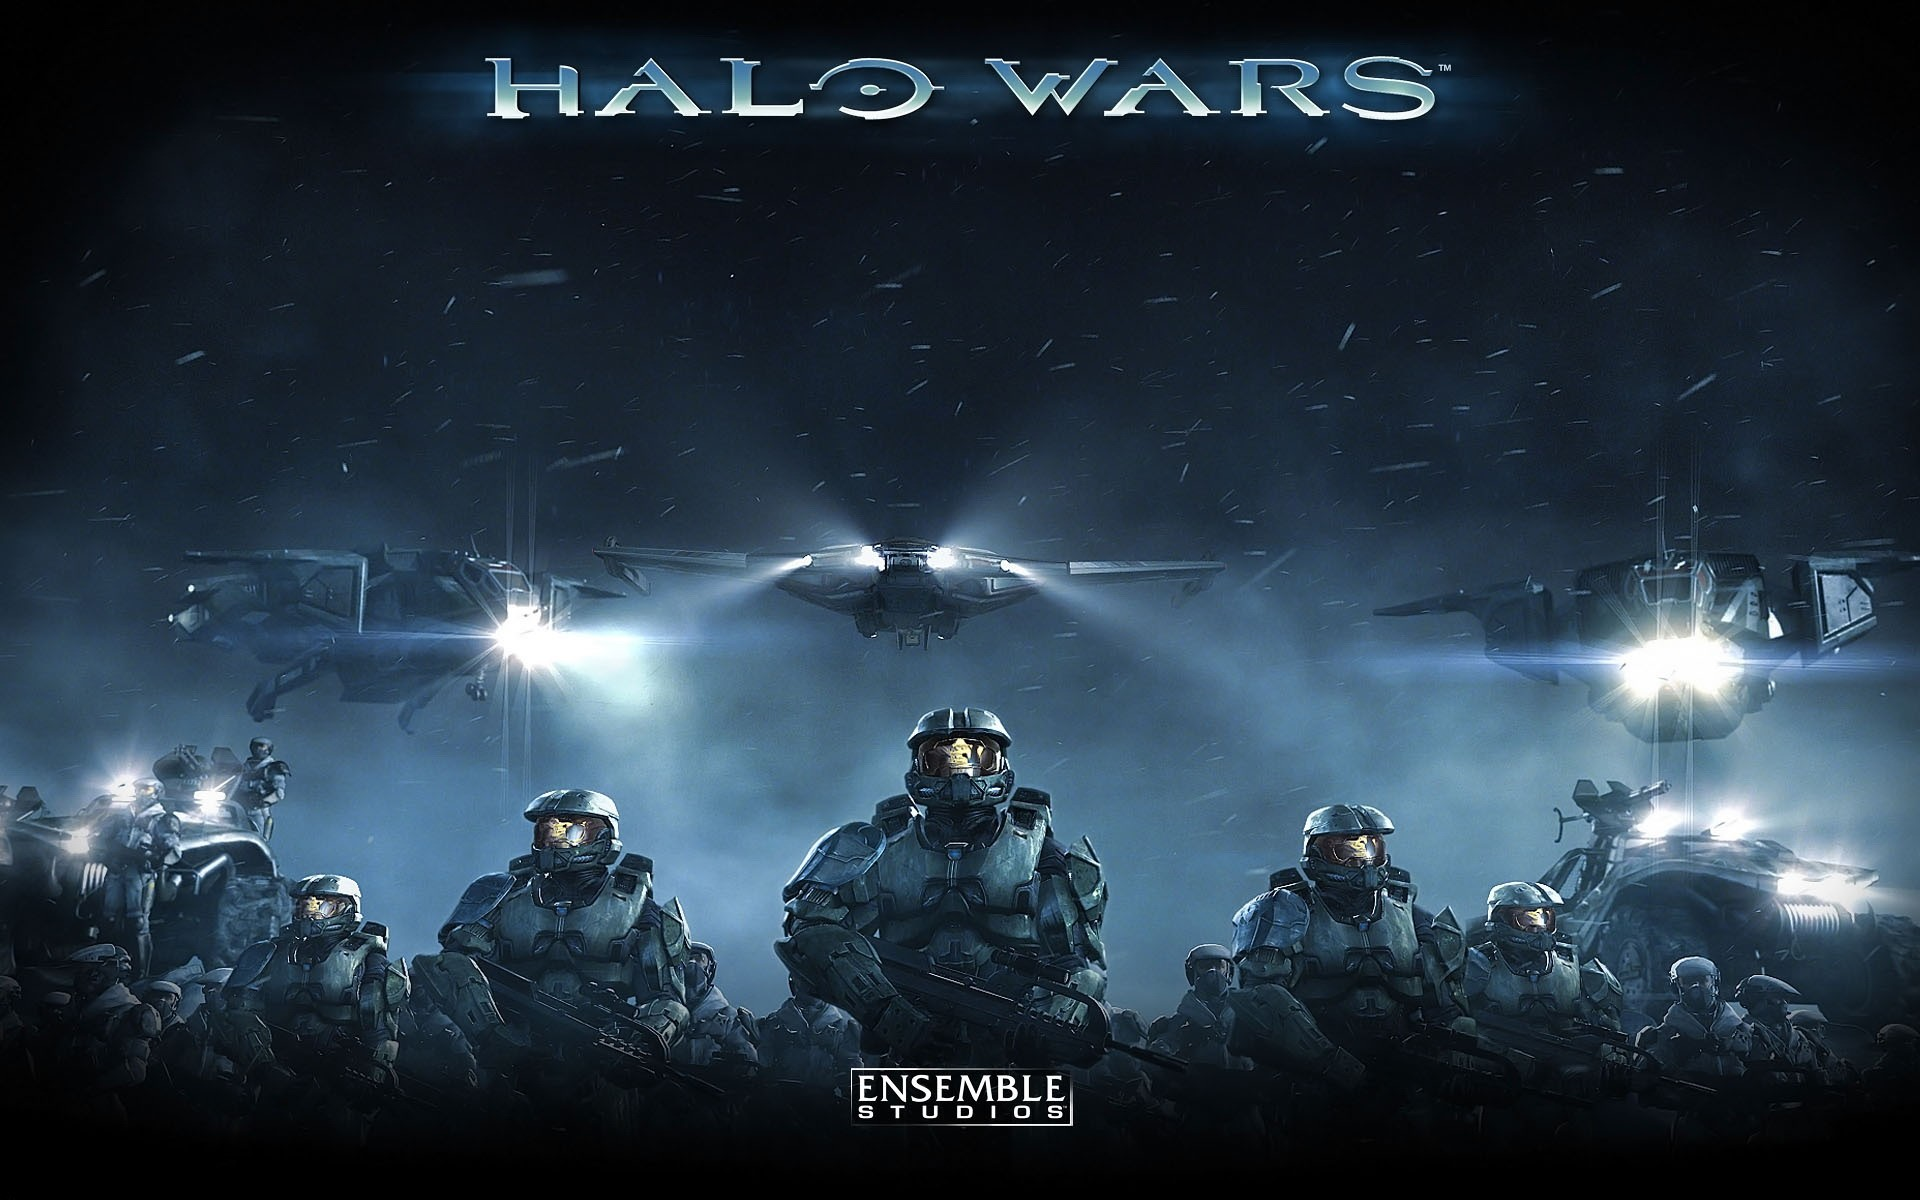 Cute Wallpapers 1366x768 Halo Wars Game Wallpapers Hd Wallpapers Id 8082